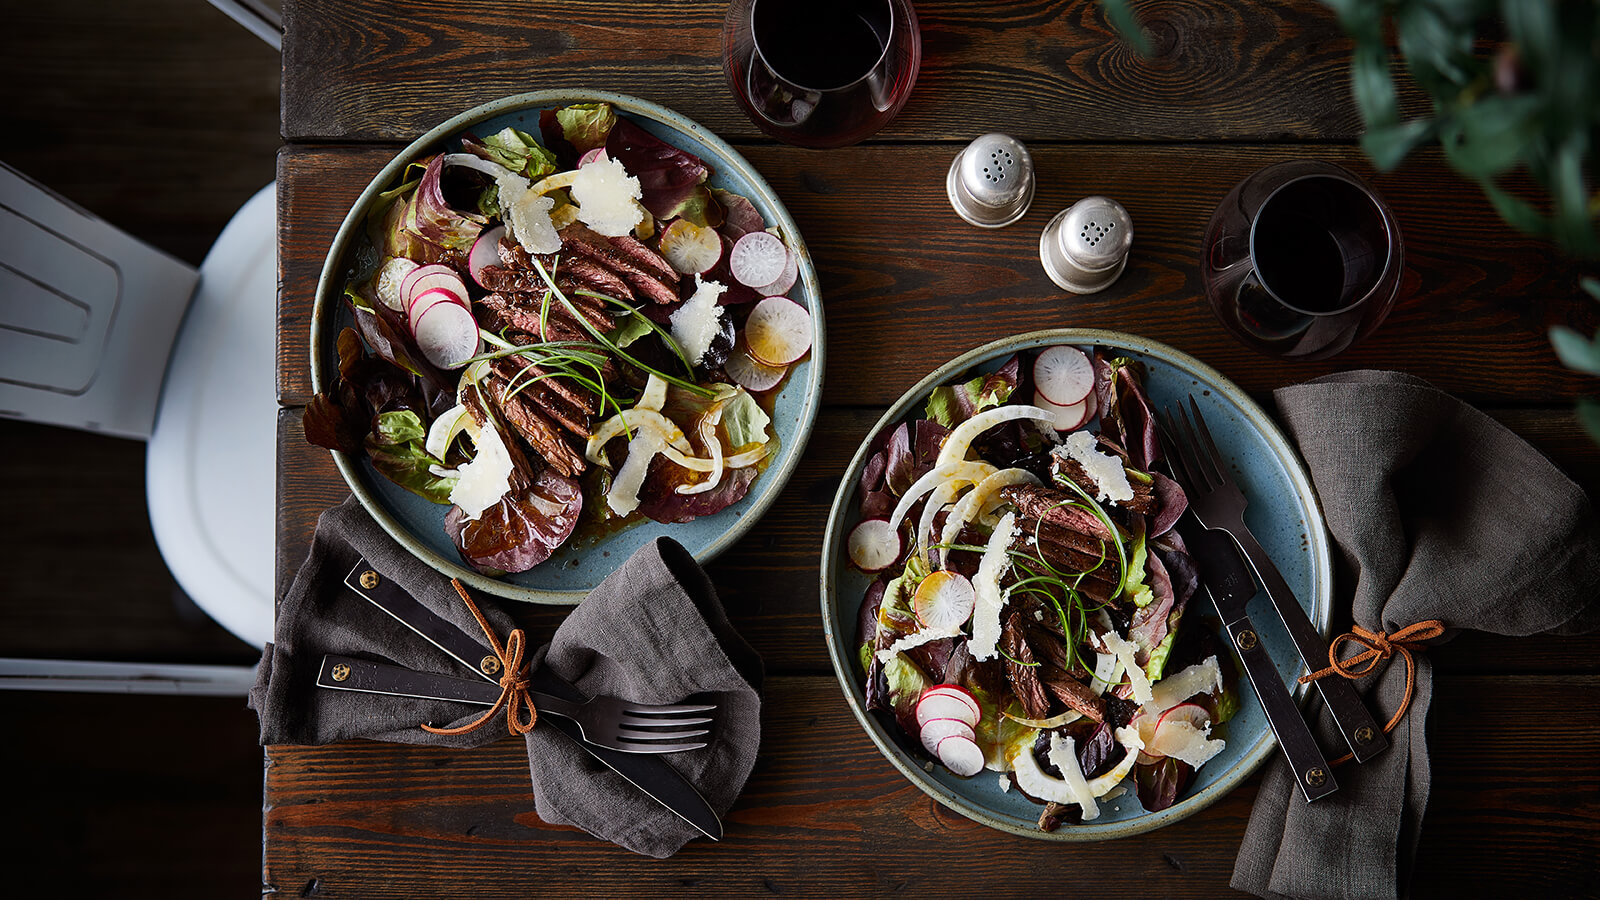 Steak Salad with Smoked Shoyu-Citrus Vinaigrette